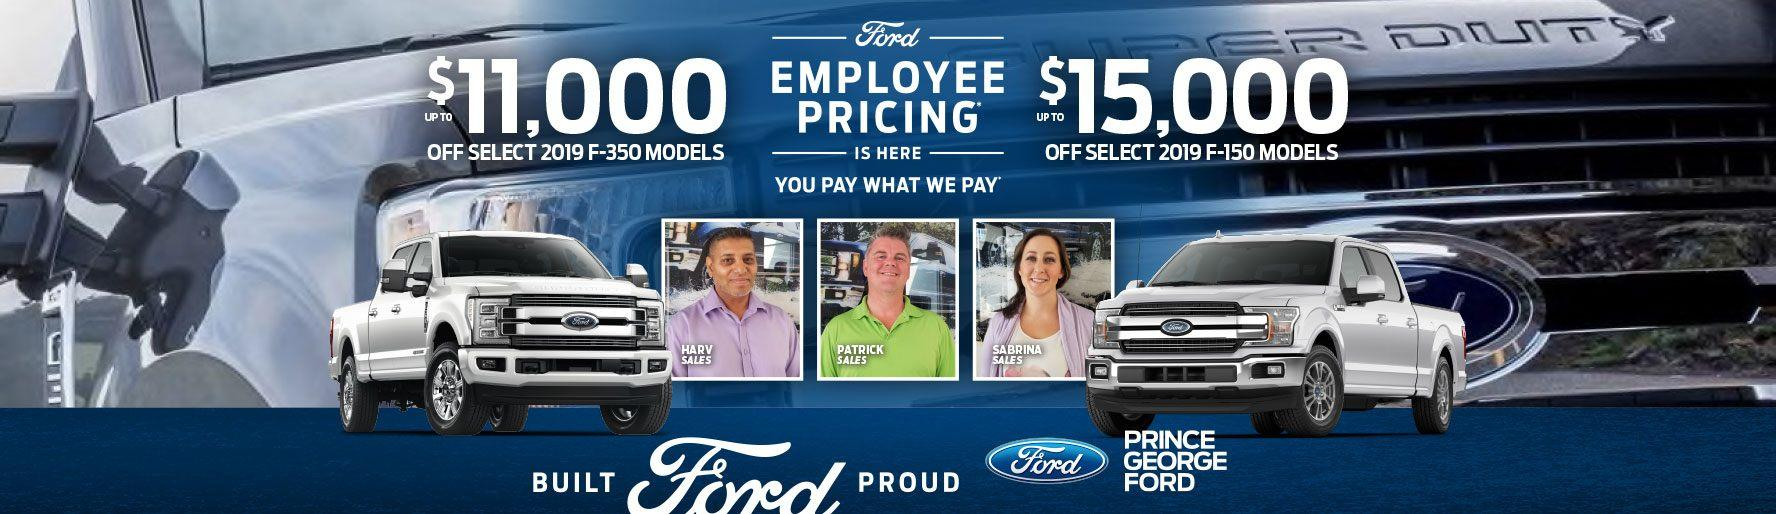 Prince George Ford Your New & Used Ford Dealership | Prince